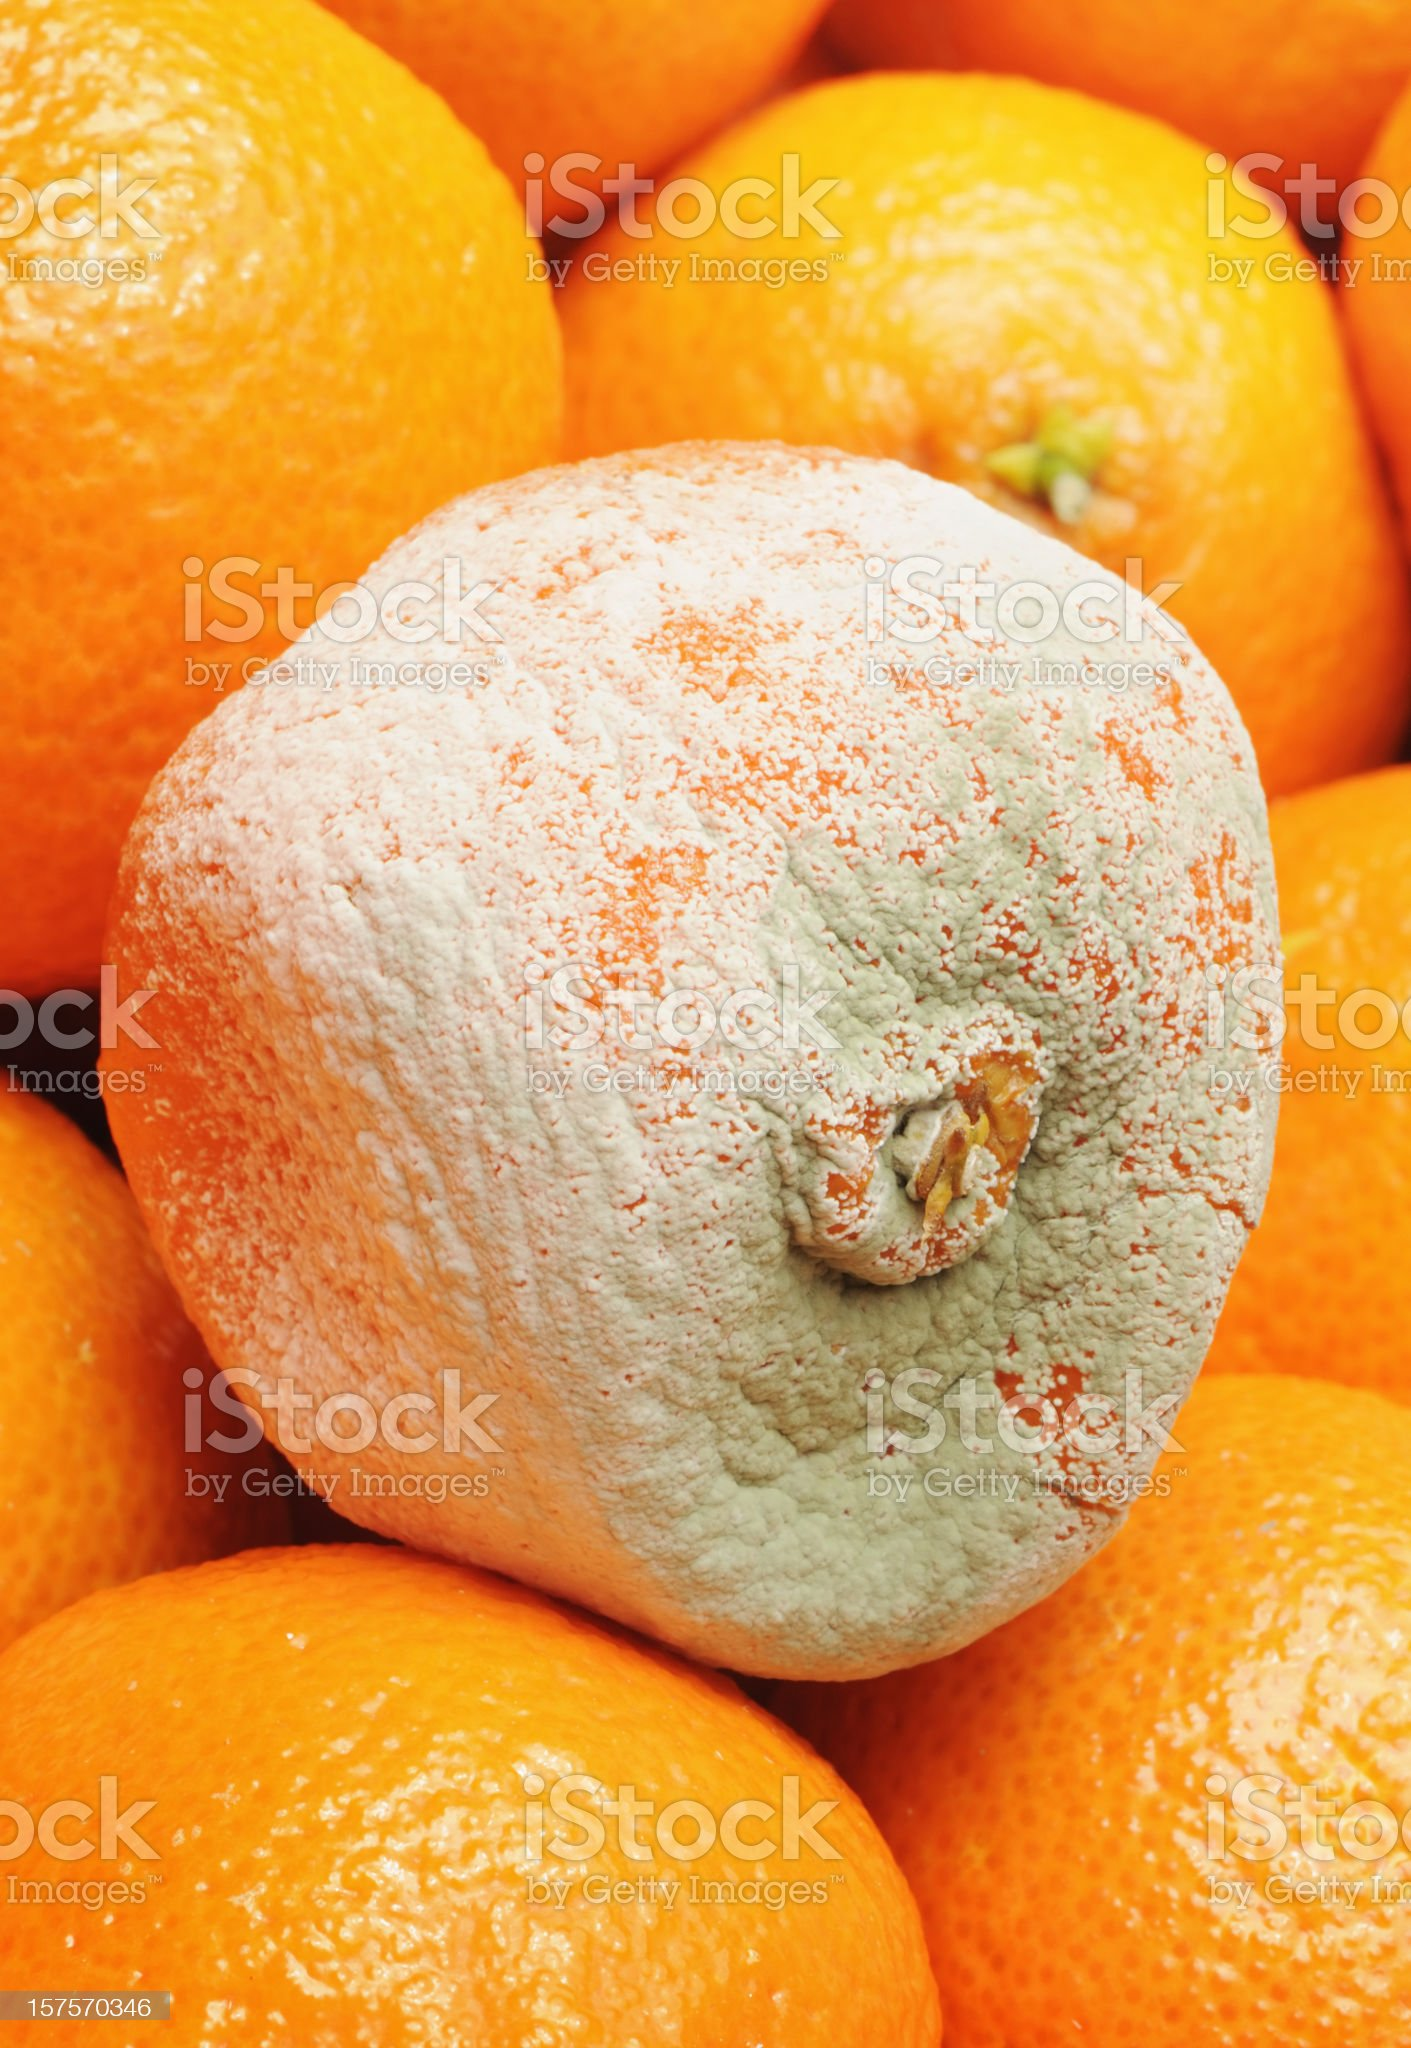 Rotten fruit royalty-free stock photo